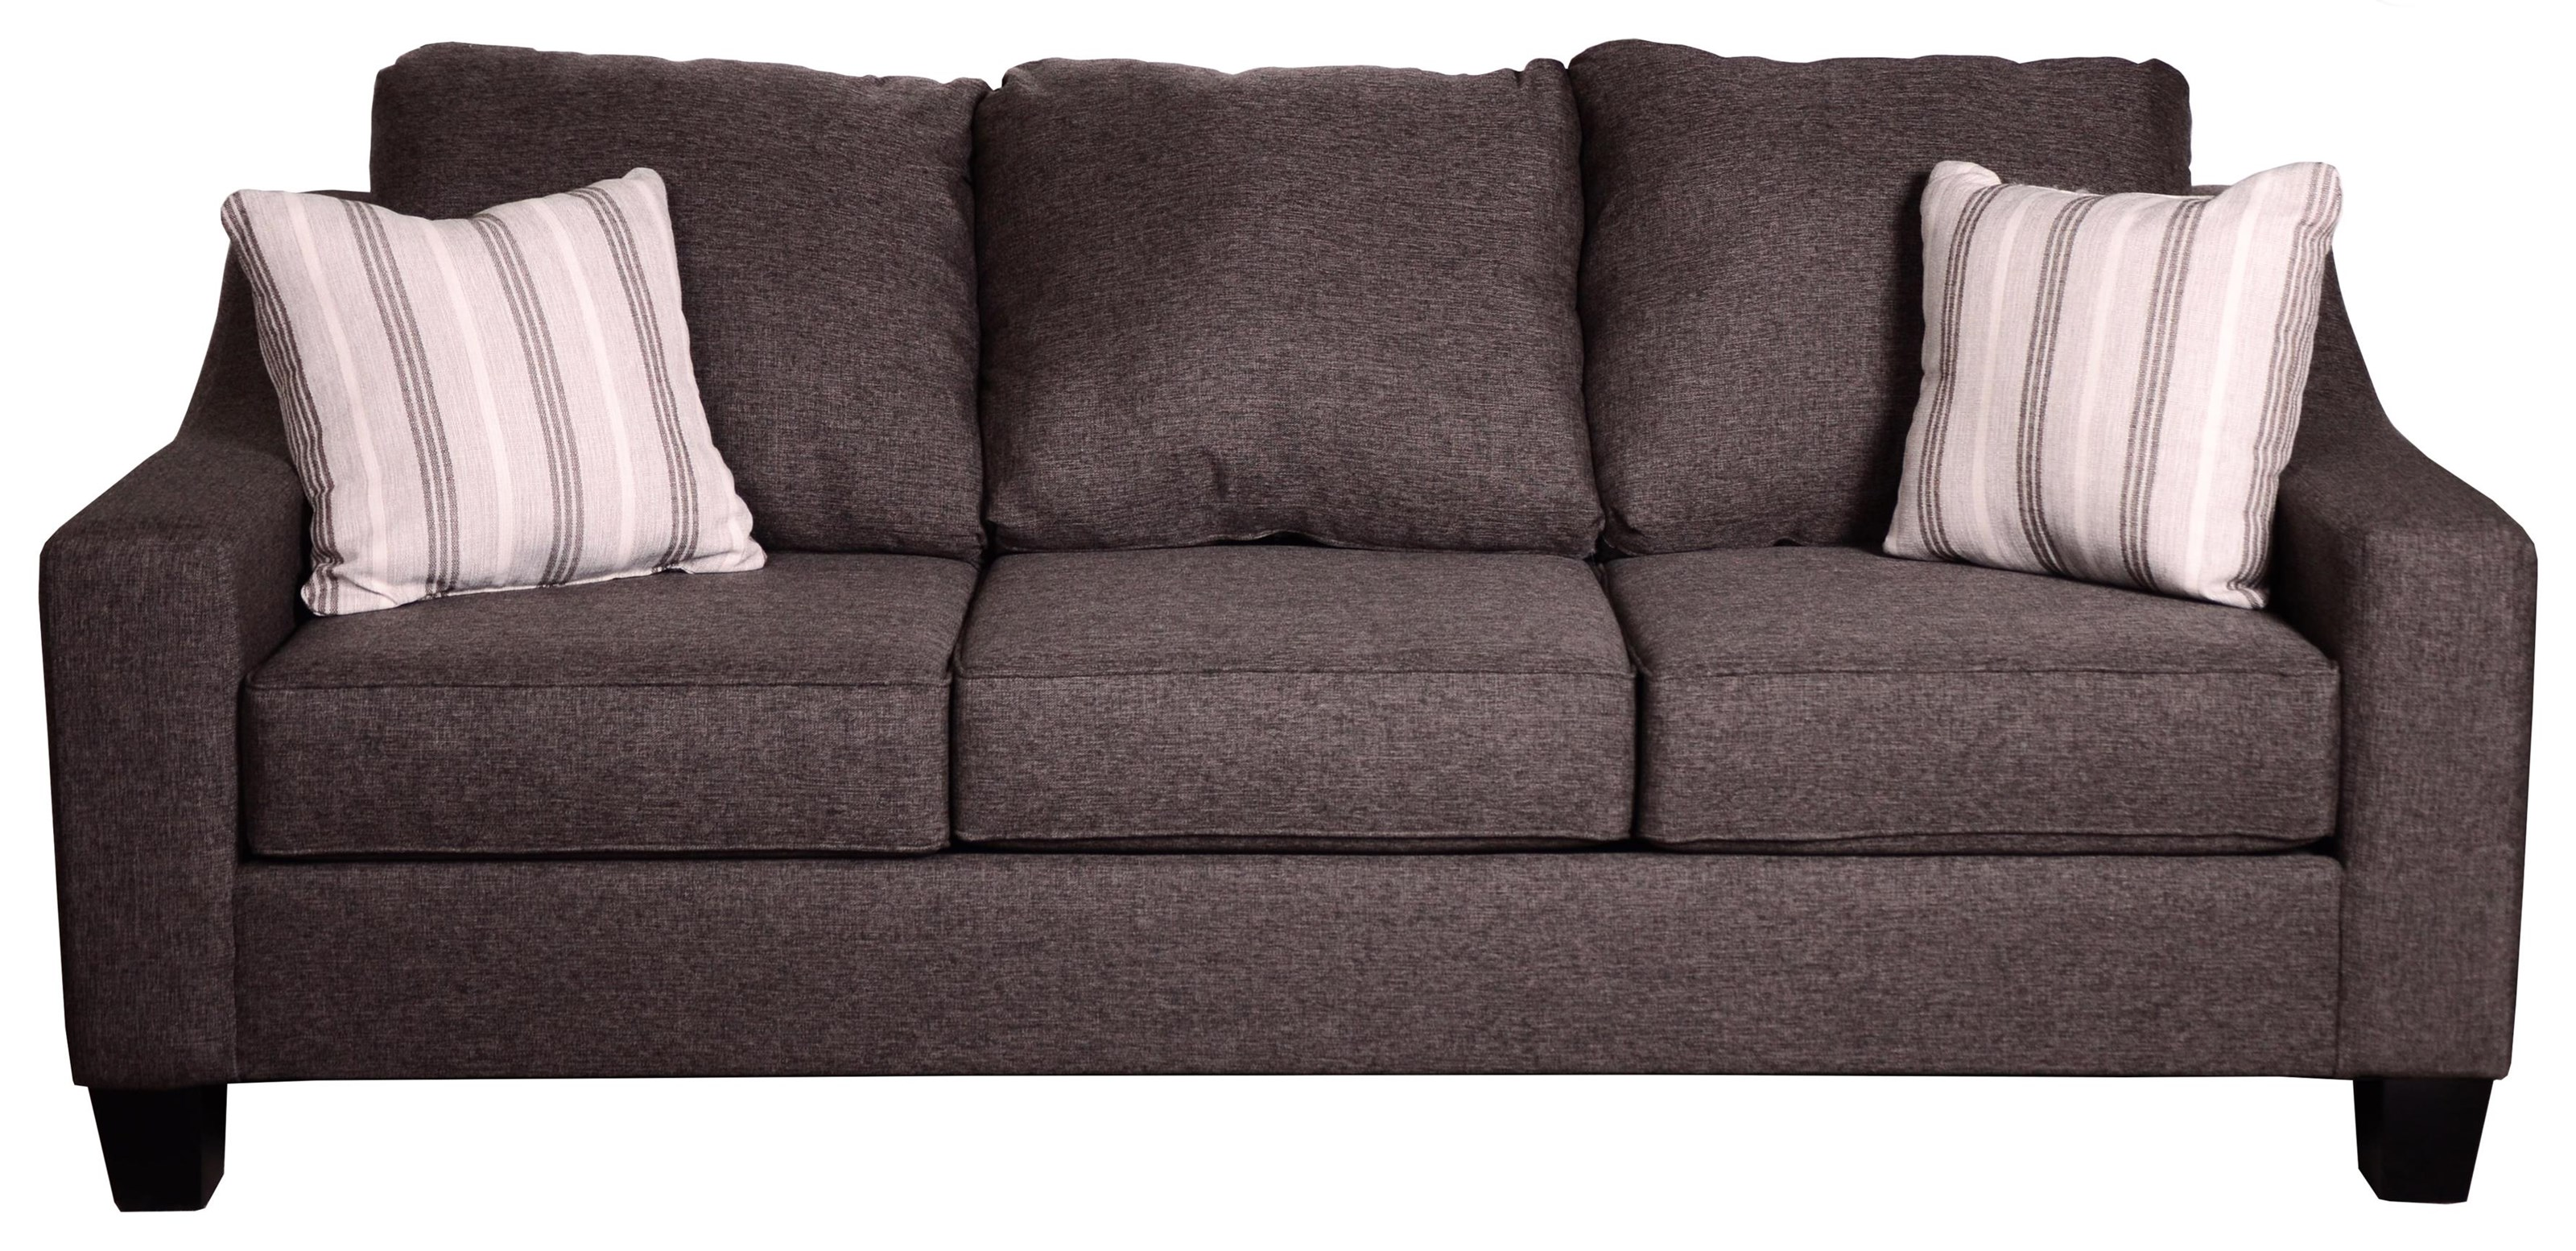 Lucy Splash Charcoal Sofa by Michael Nicholas at Beck's Furniture